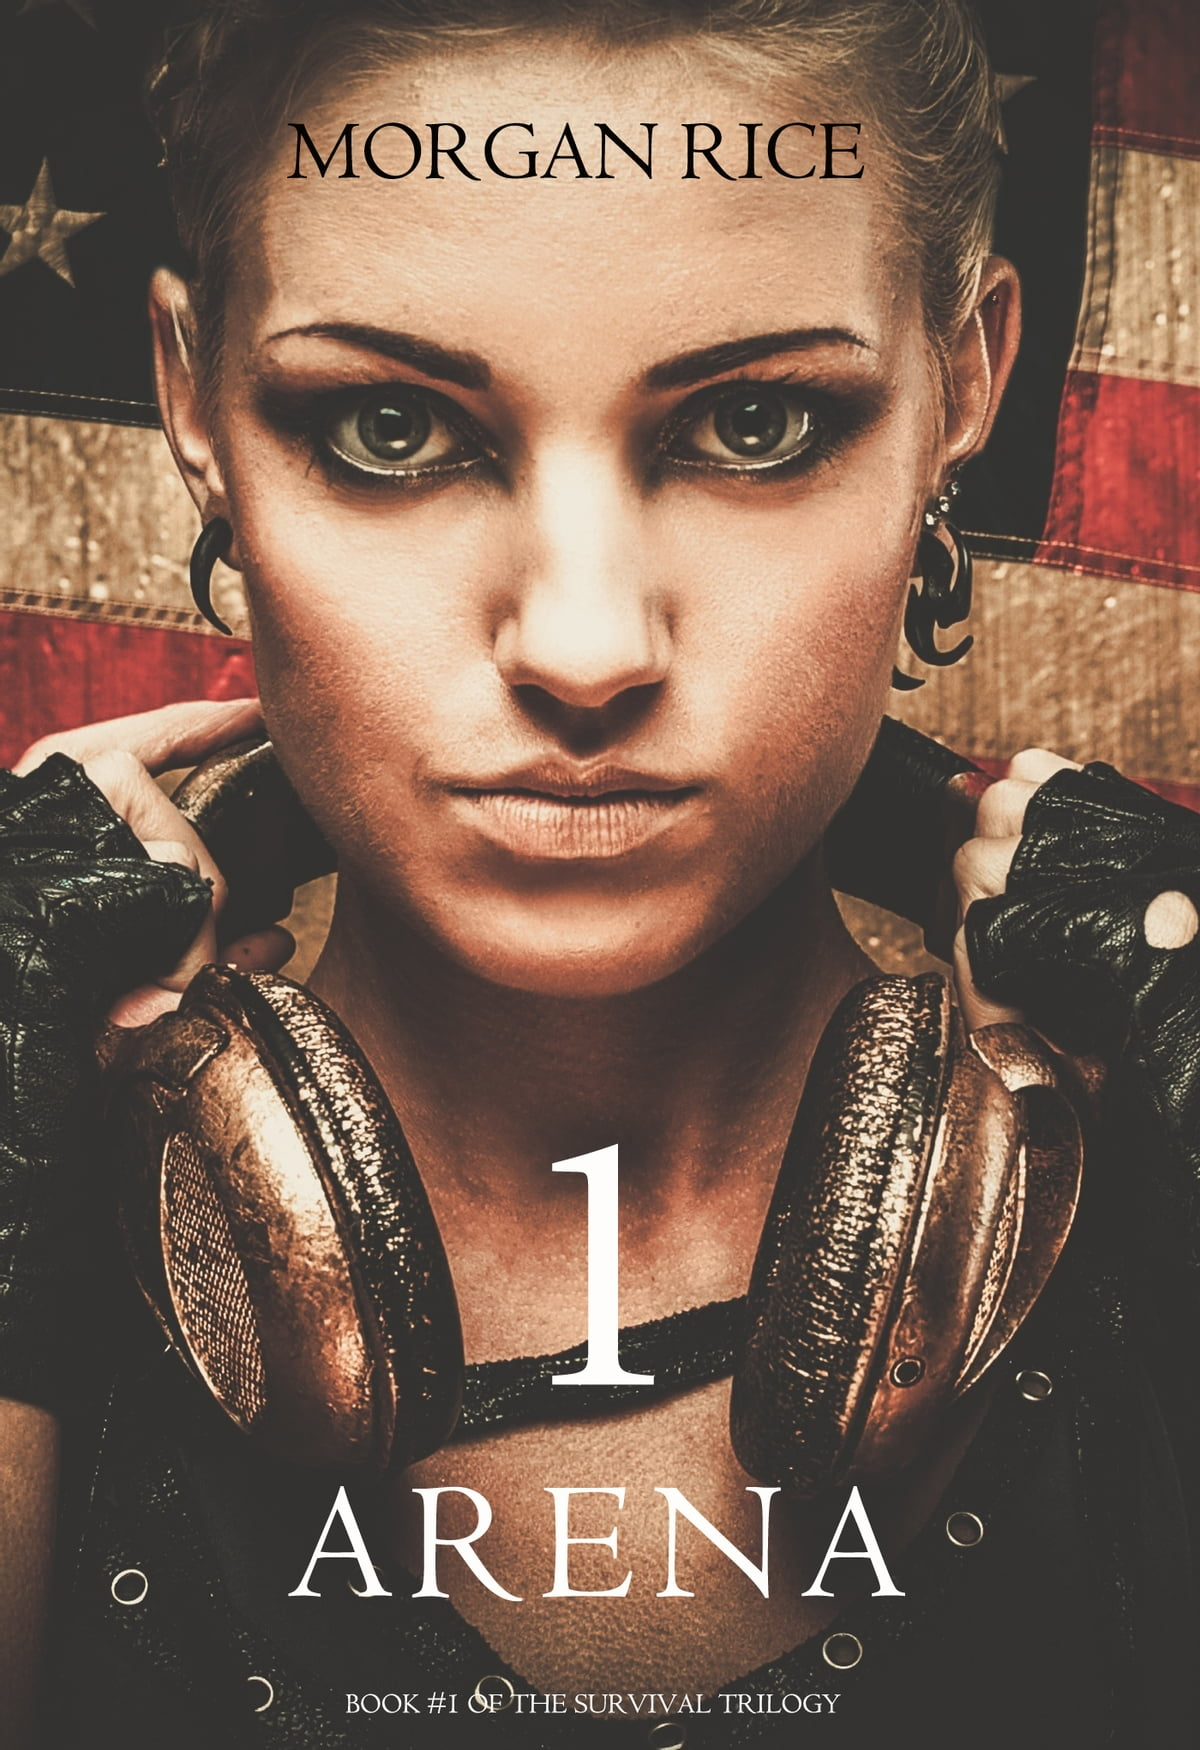 Arena One: Slaverunners (book #1 Of The Survival Trilogy) Ebook By Morgan